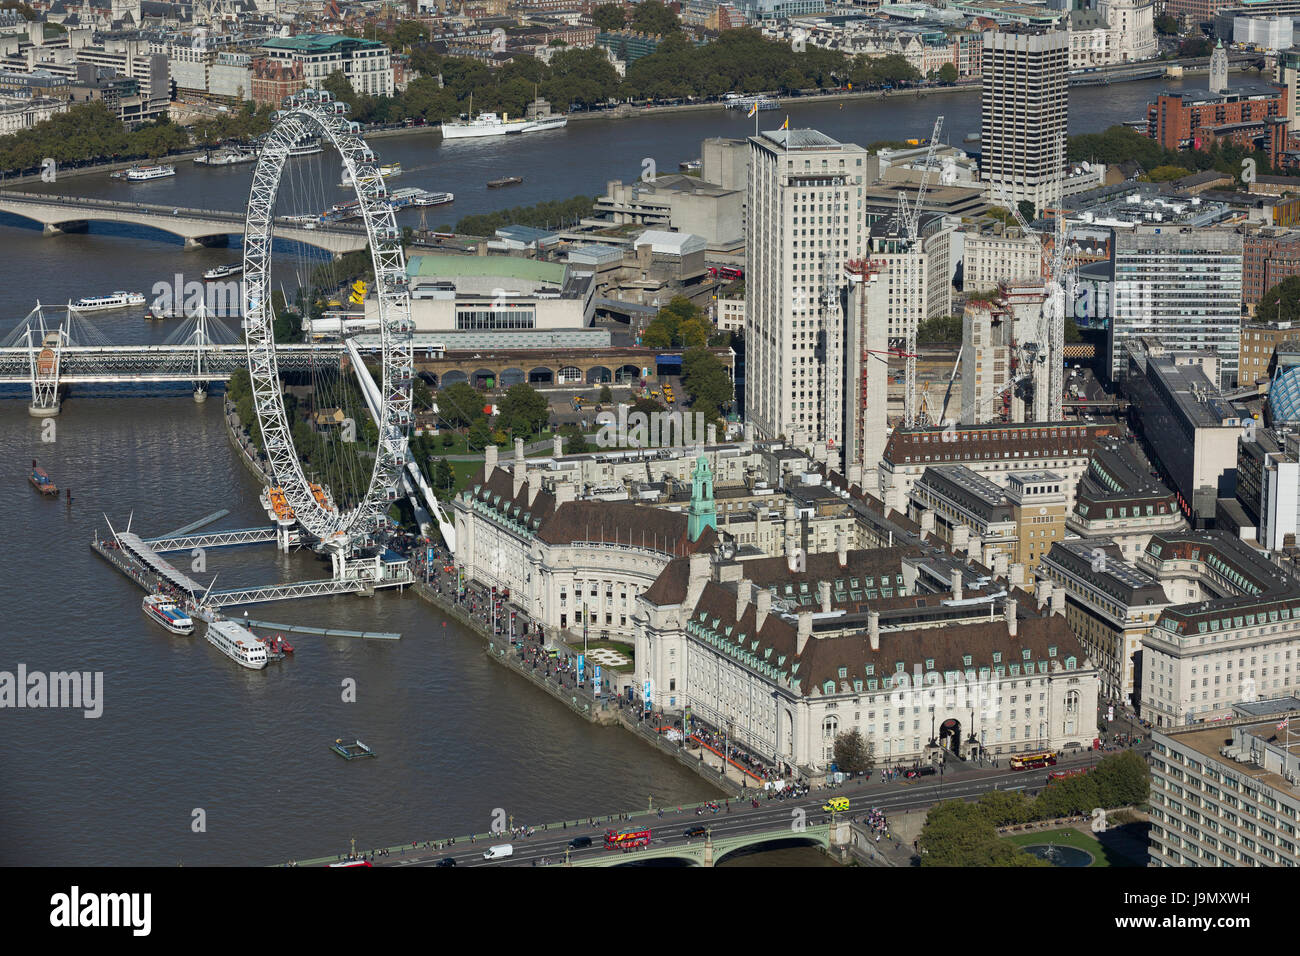 The London Eye sits on the South Bank of the River Thames. The Jubilee Gardens and County Hall Building. Lambeth, - Stock Image